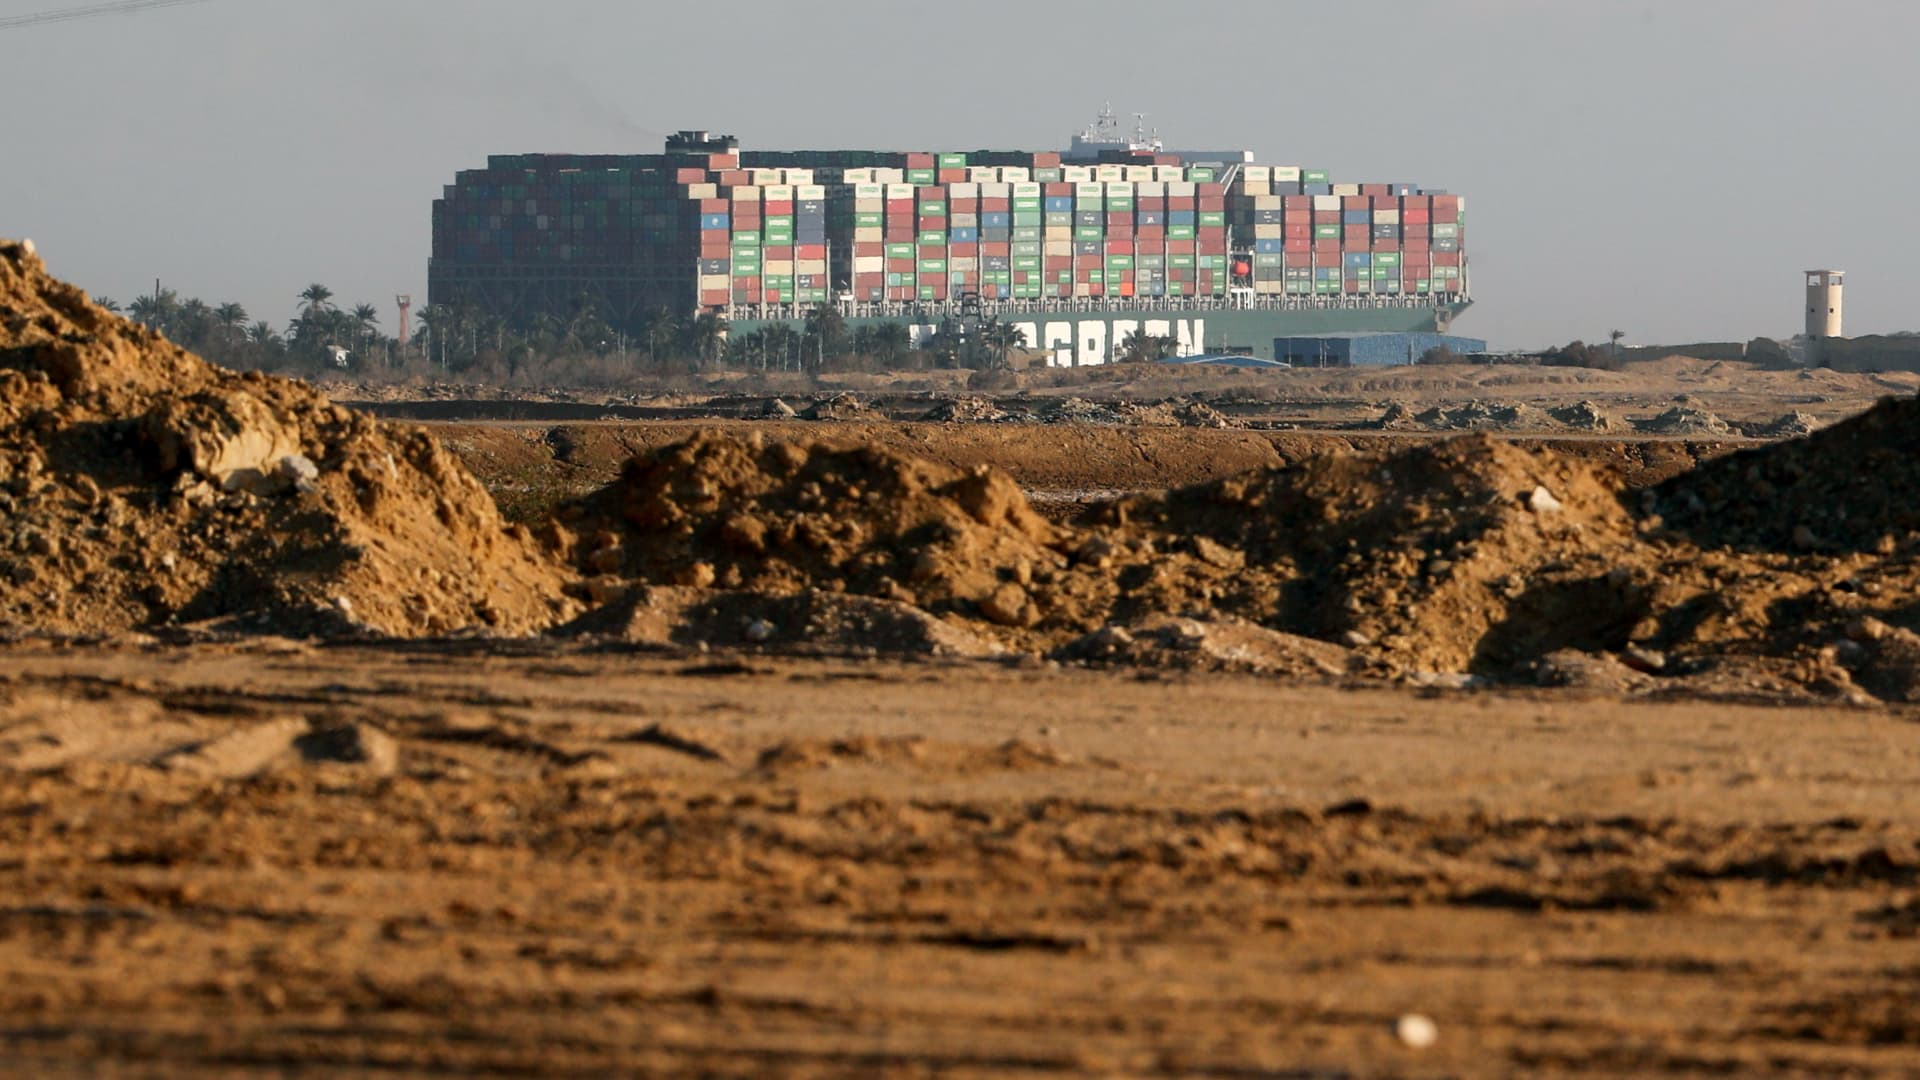 Stranded container ship Ever Given, one of the world's largest container ships, is seen after it ran aground, in Suez Canal, Egypt March 26, 2021.